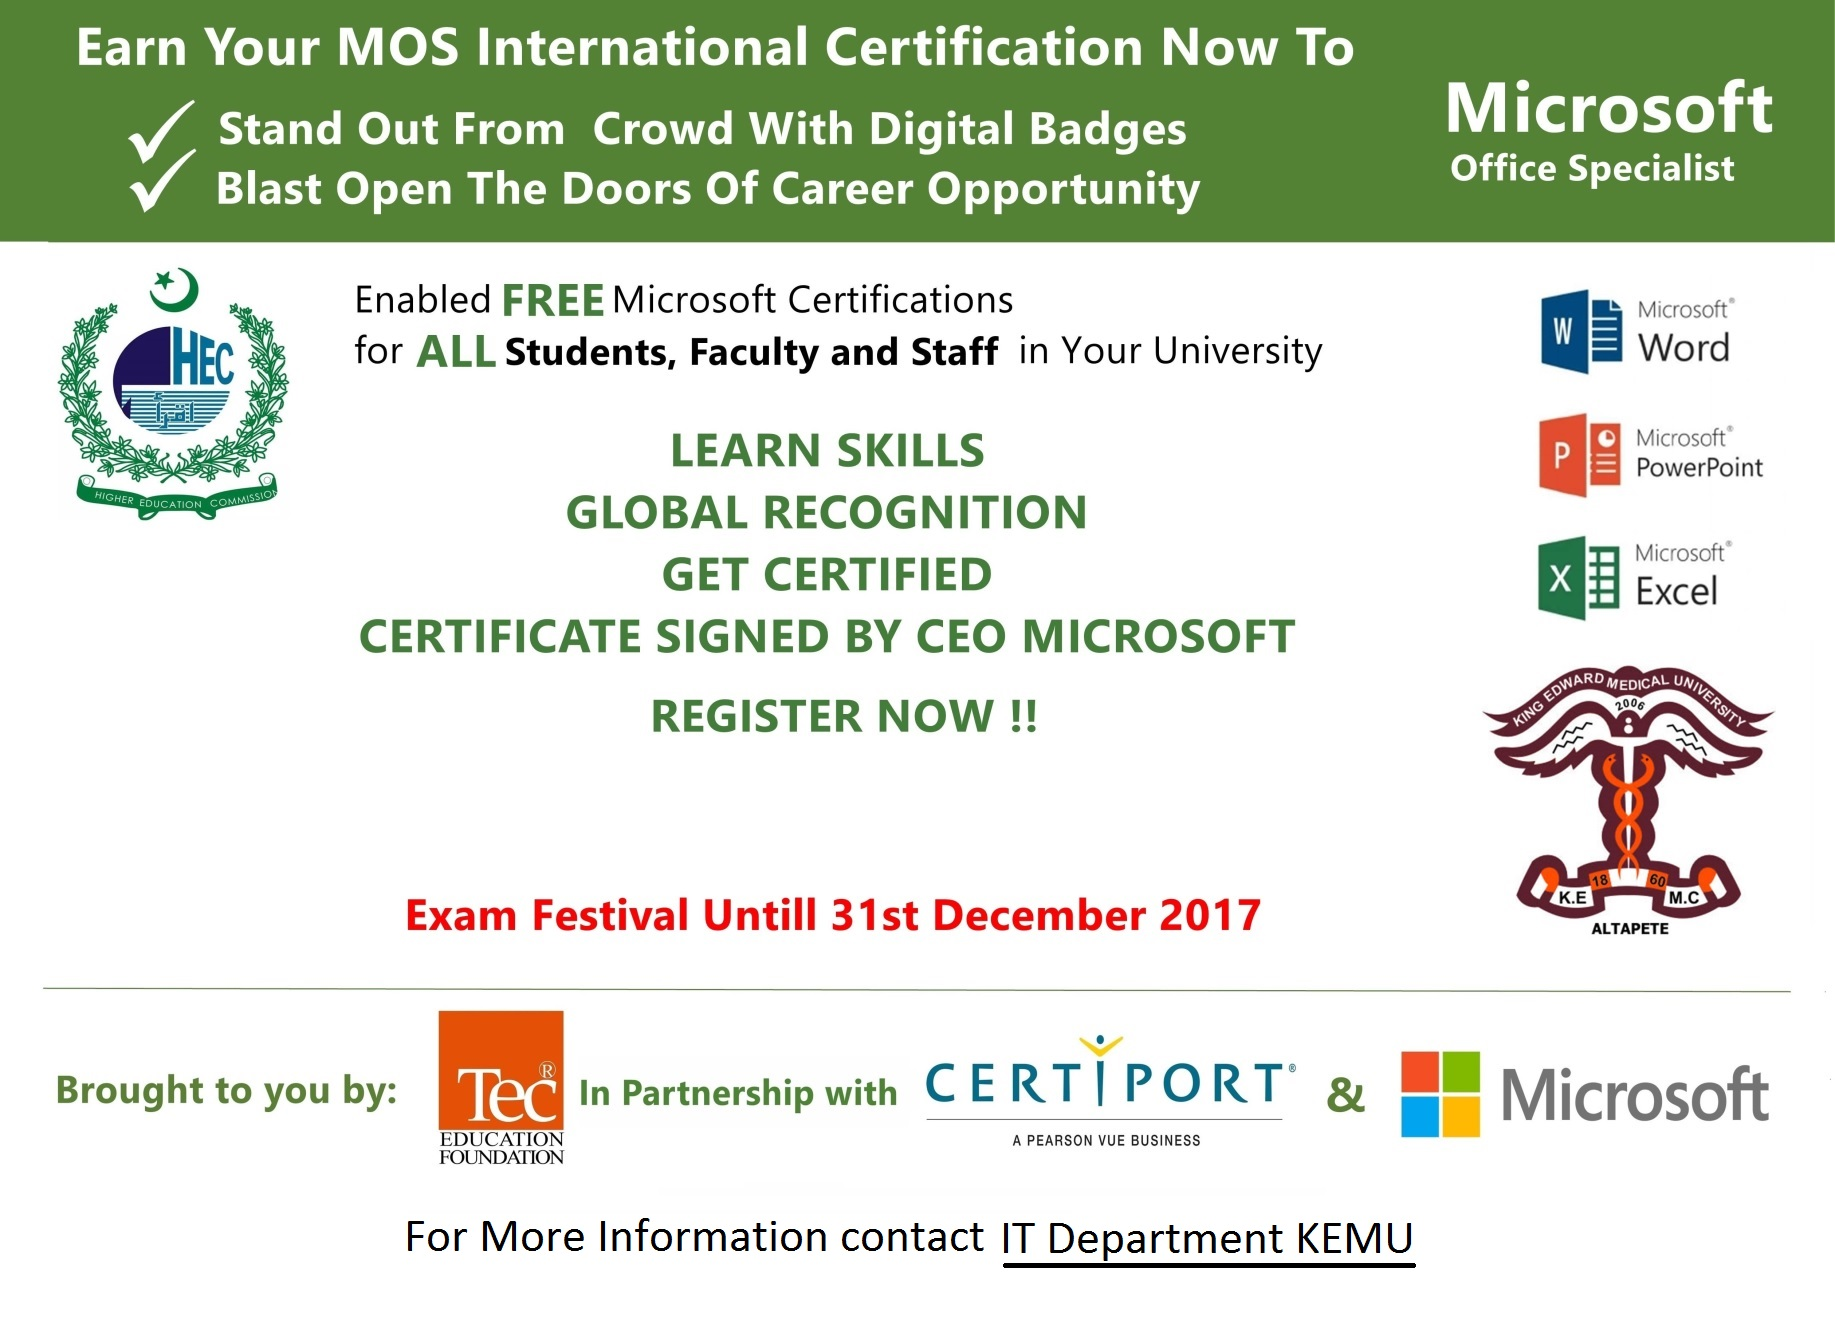 Free Microsoft Office Specialist Mos Certifications For All